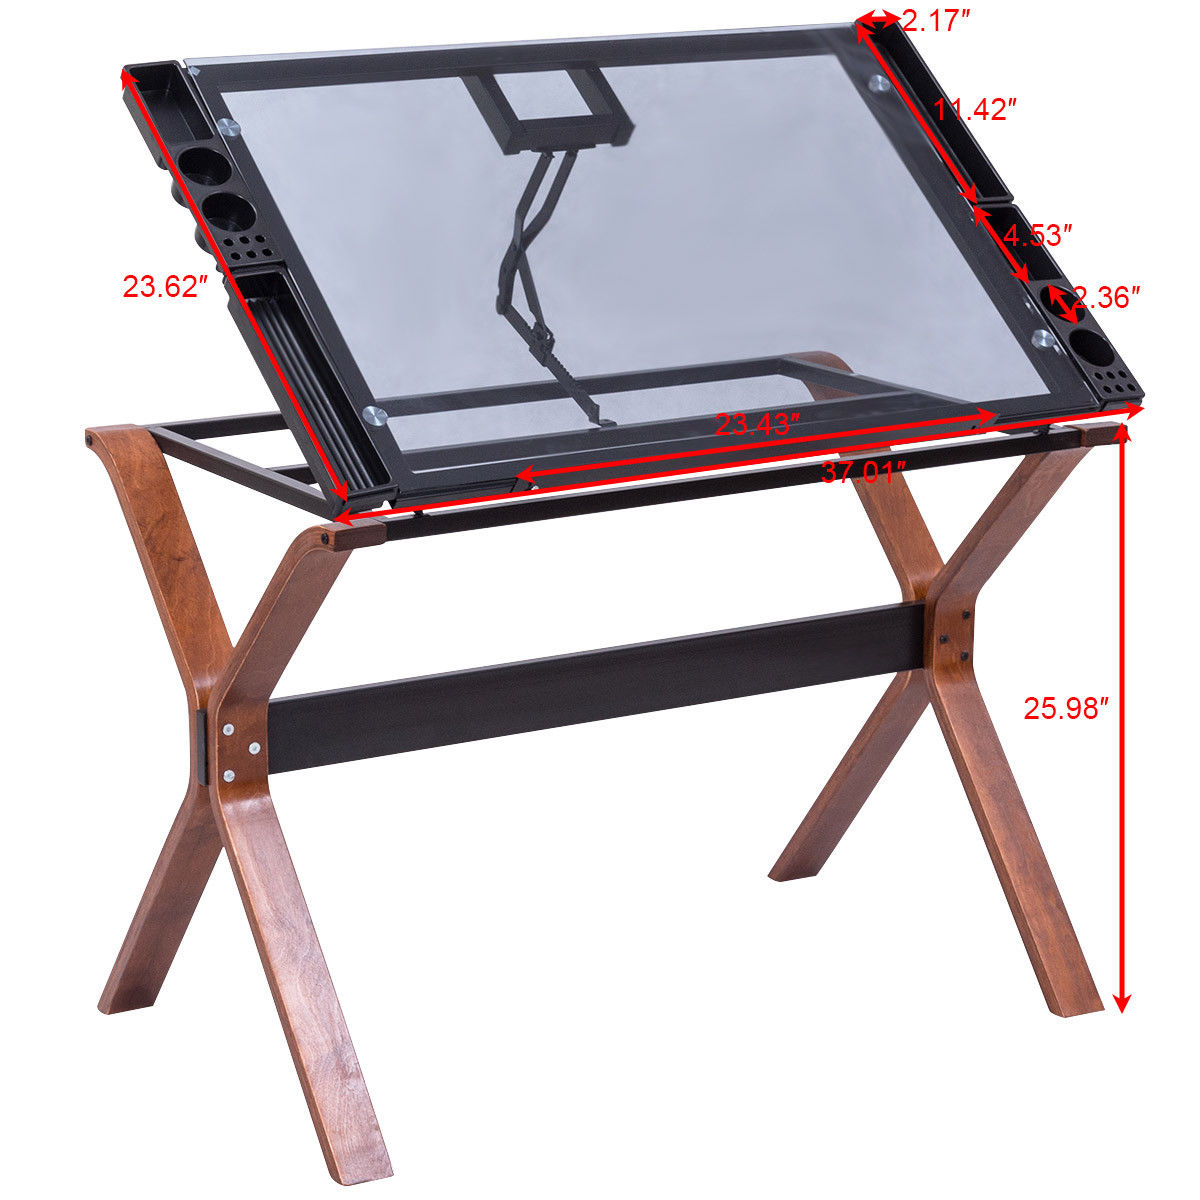 Adjustable Height Drafting Table Adjustable Top Drafting Desk Marvelous Interior Images Of Homes